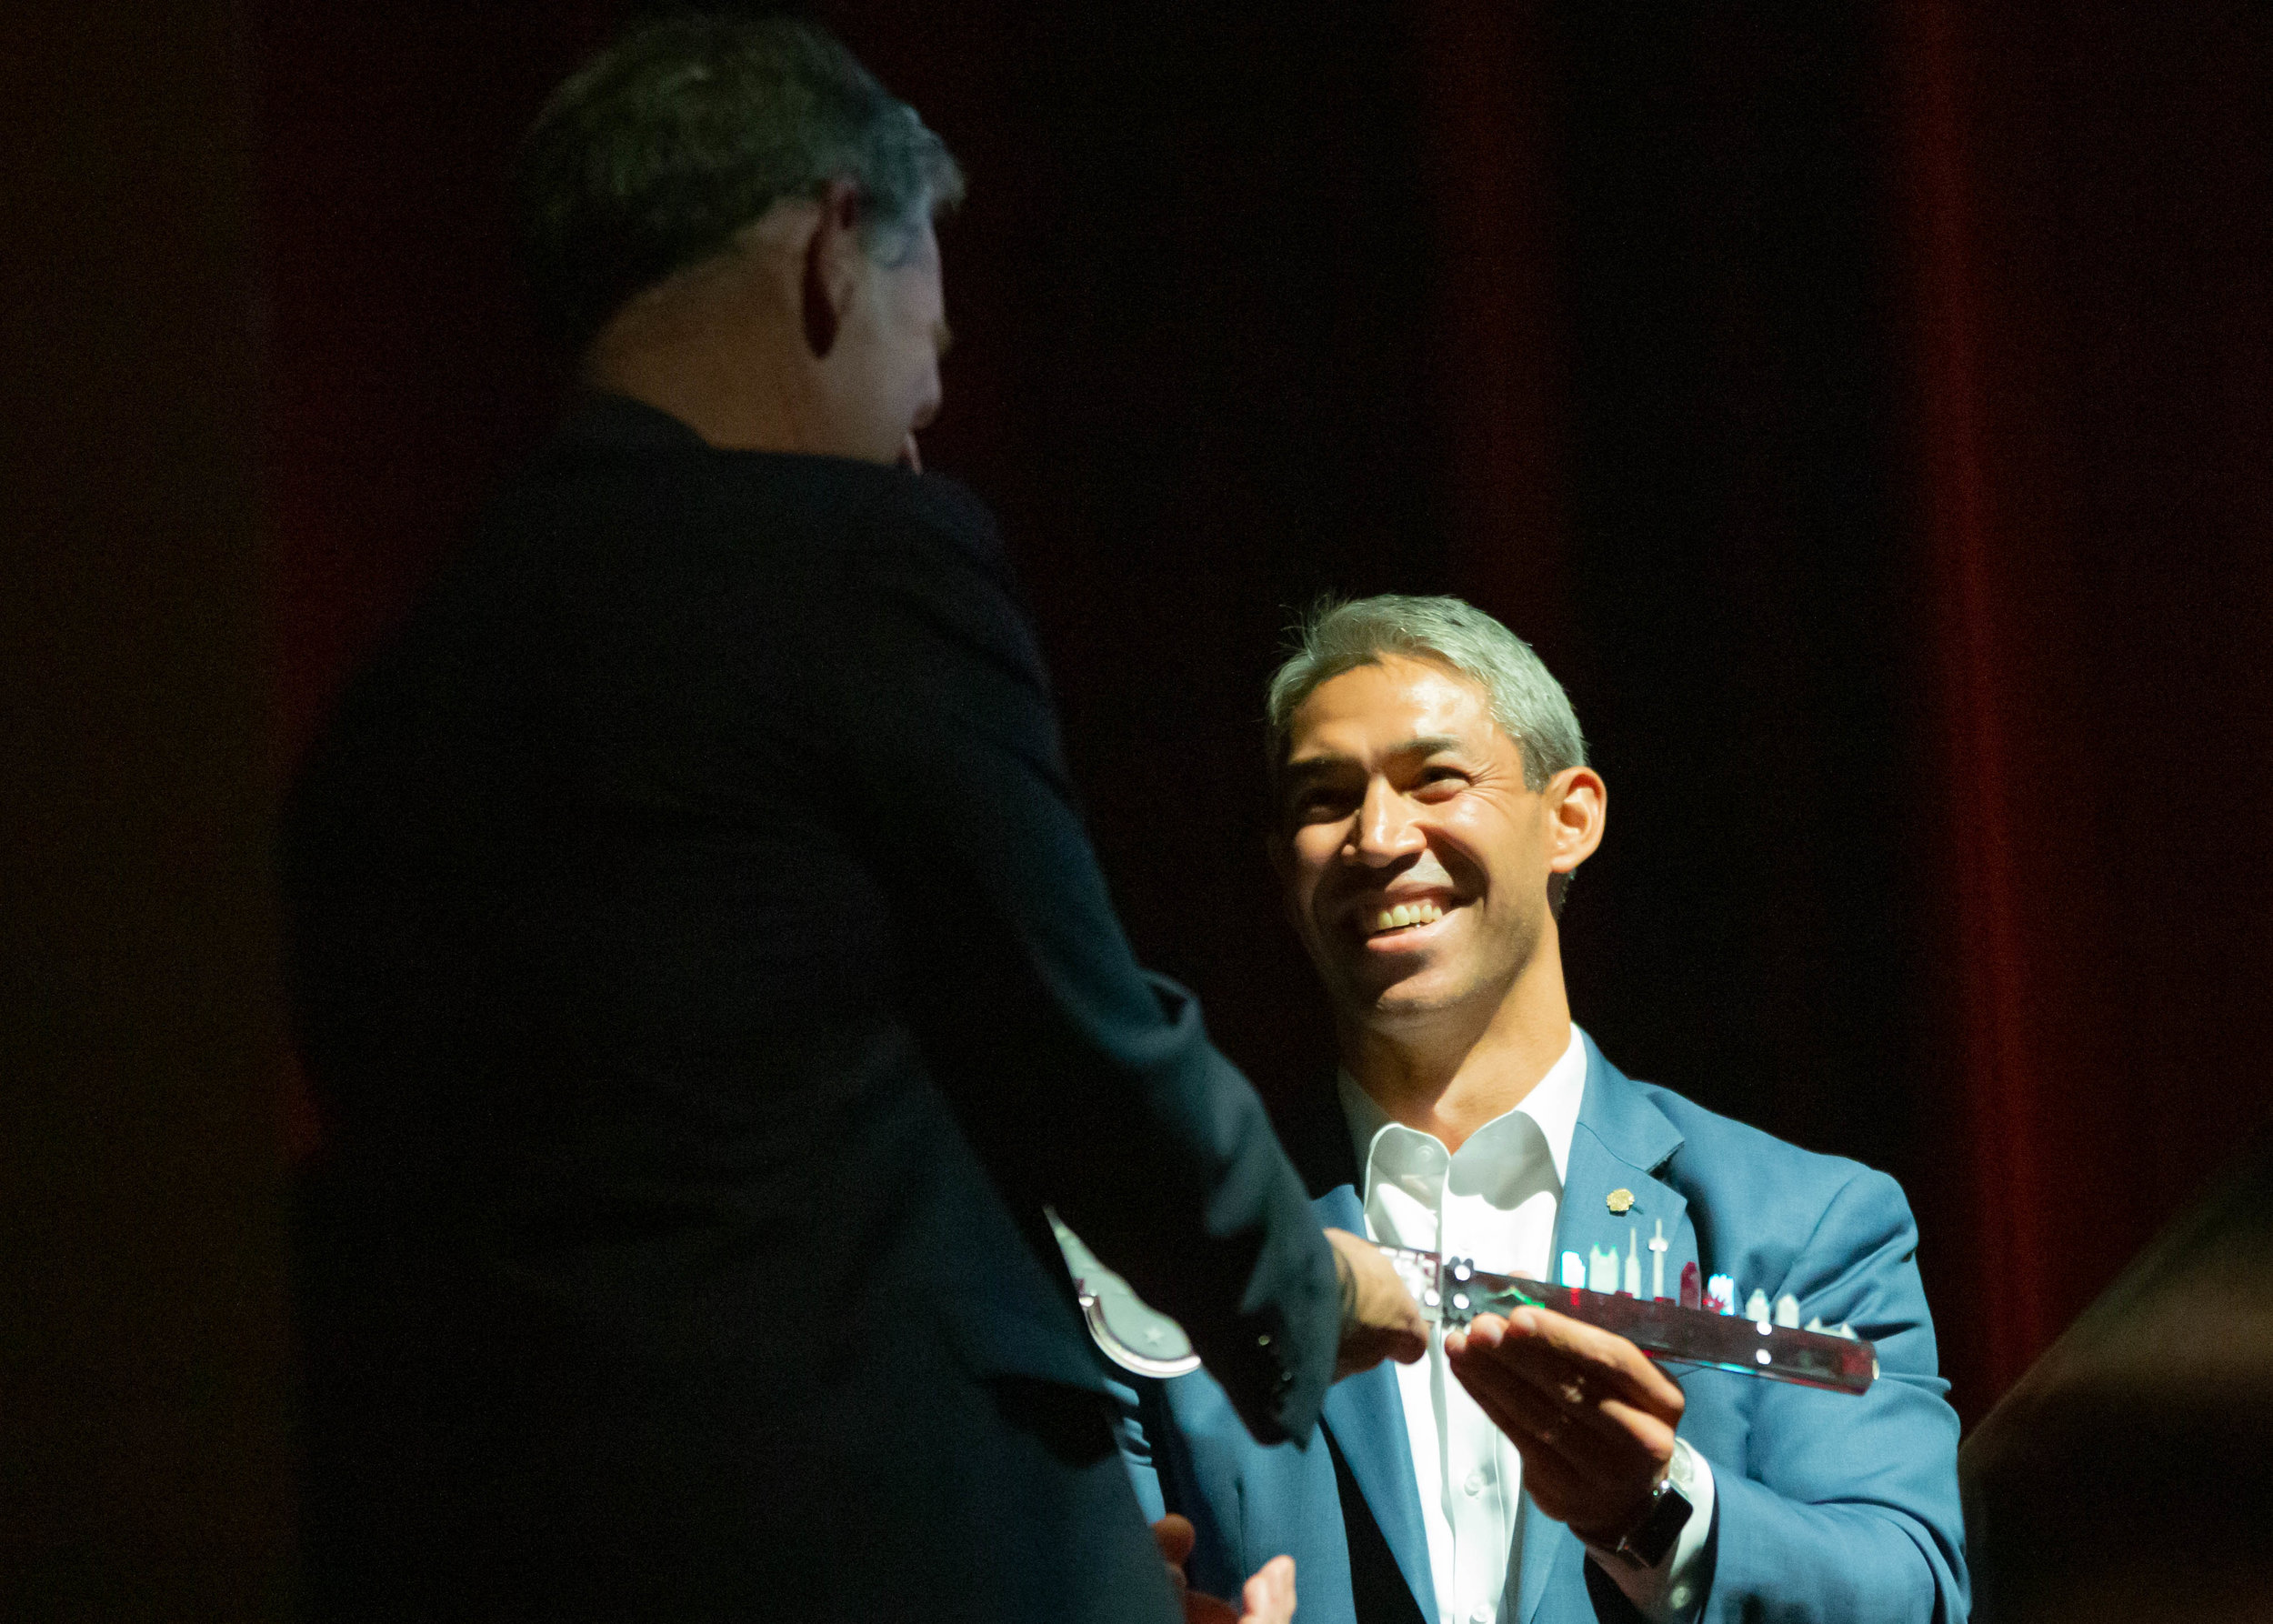 Mayor Ron Nirenberg presents the Digital Key to the City to Reed Hastings. (Photo by  GA Media Productions .)